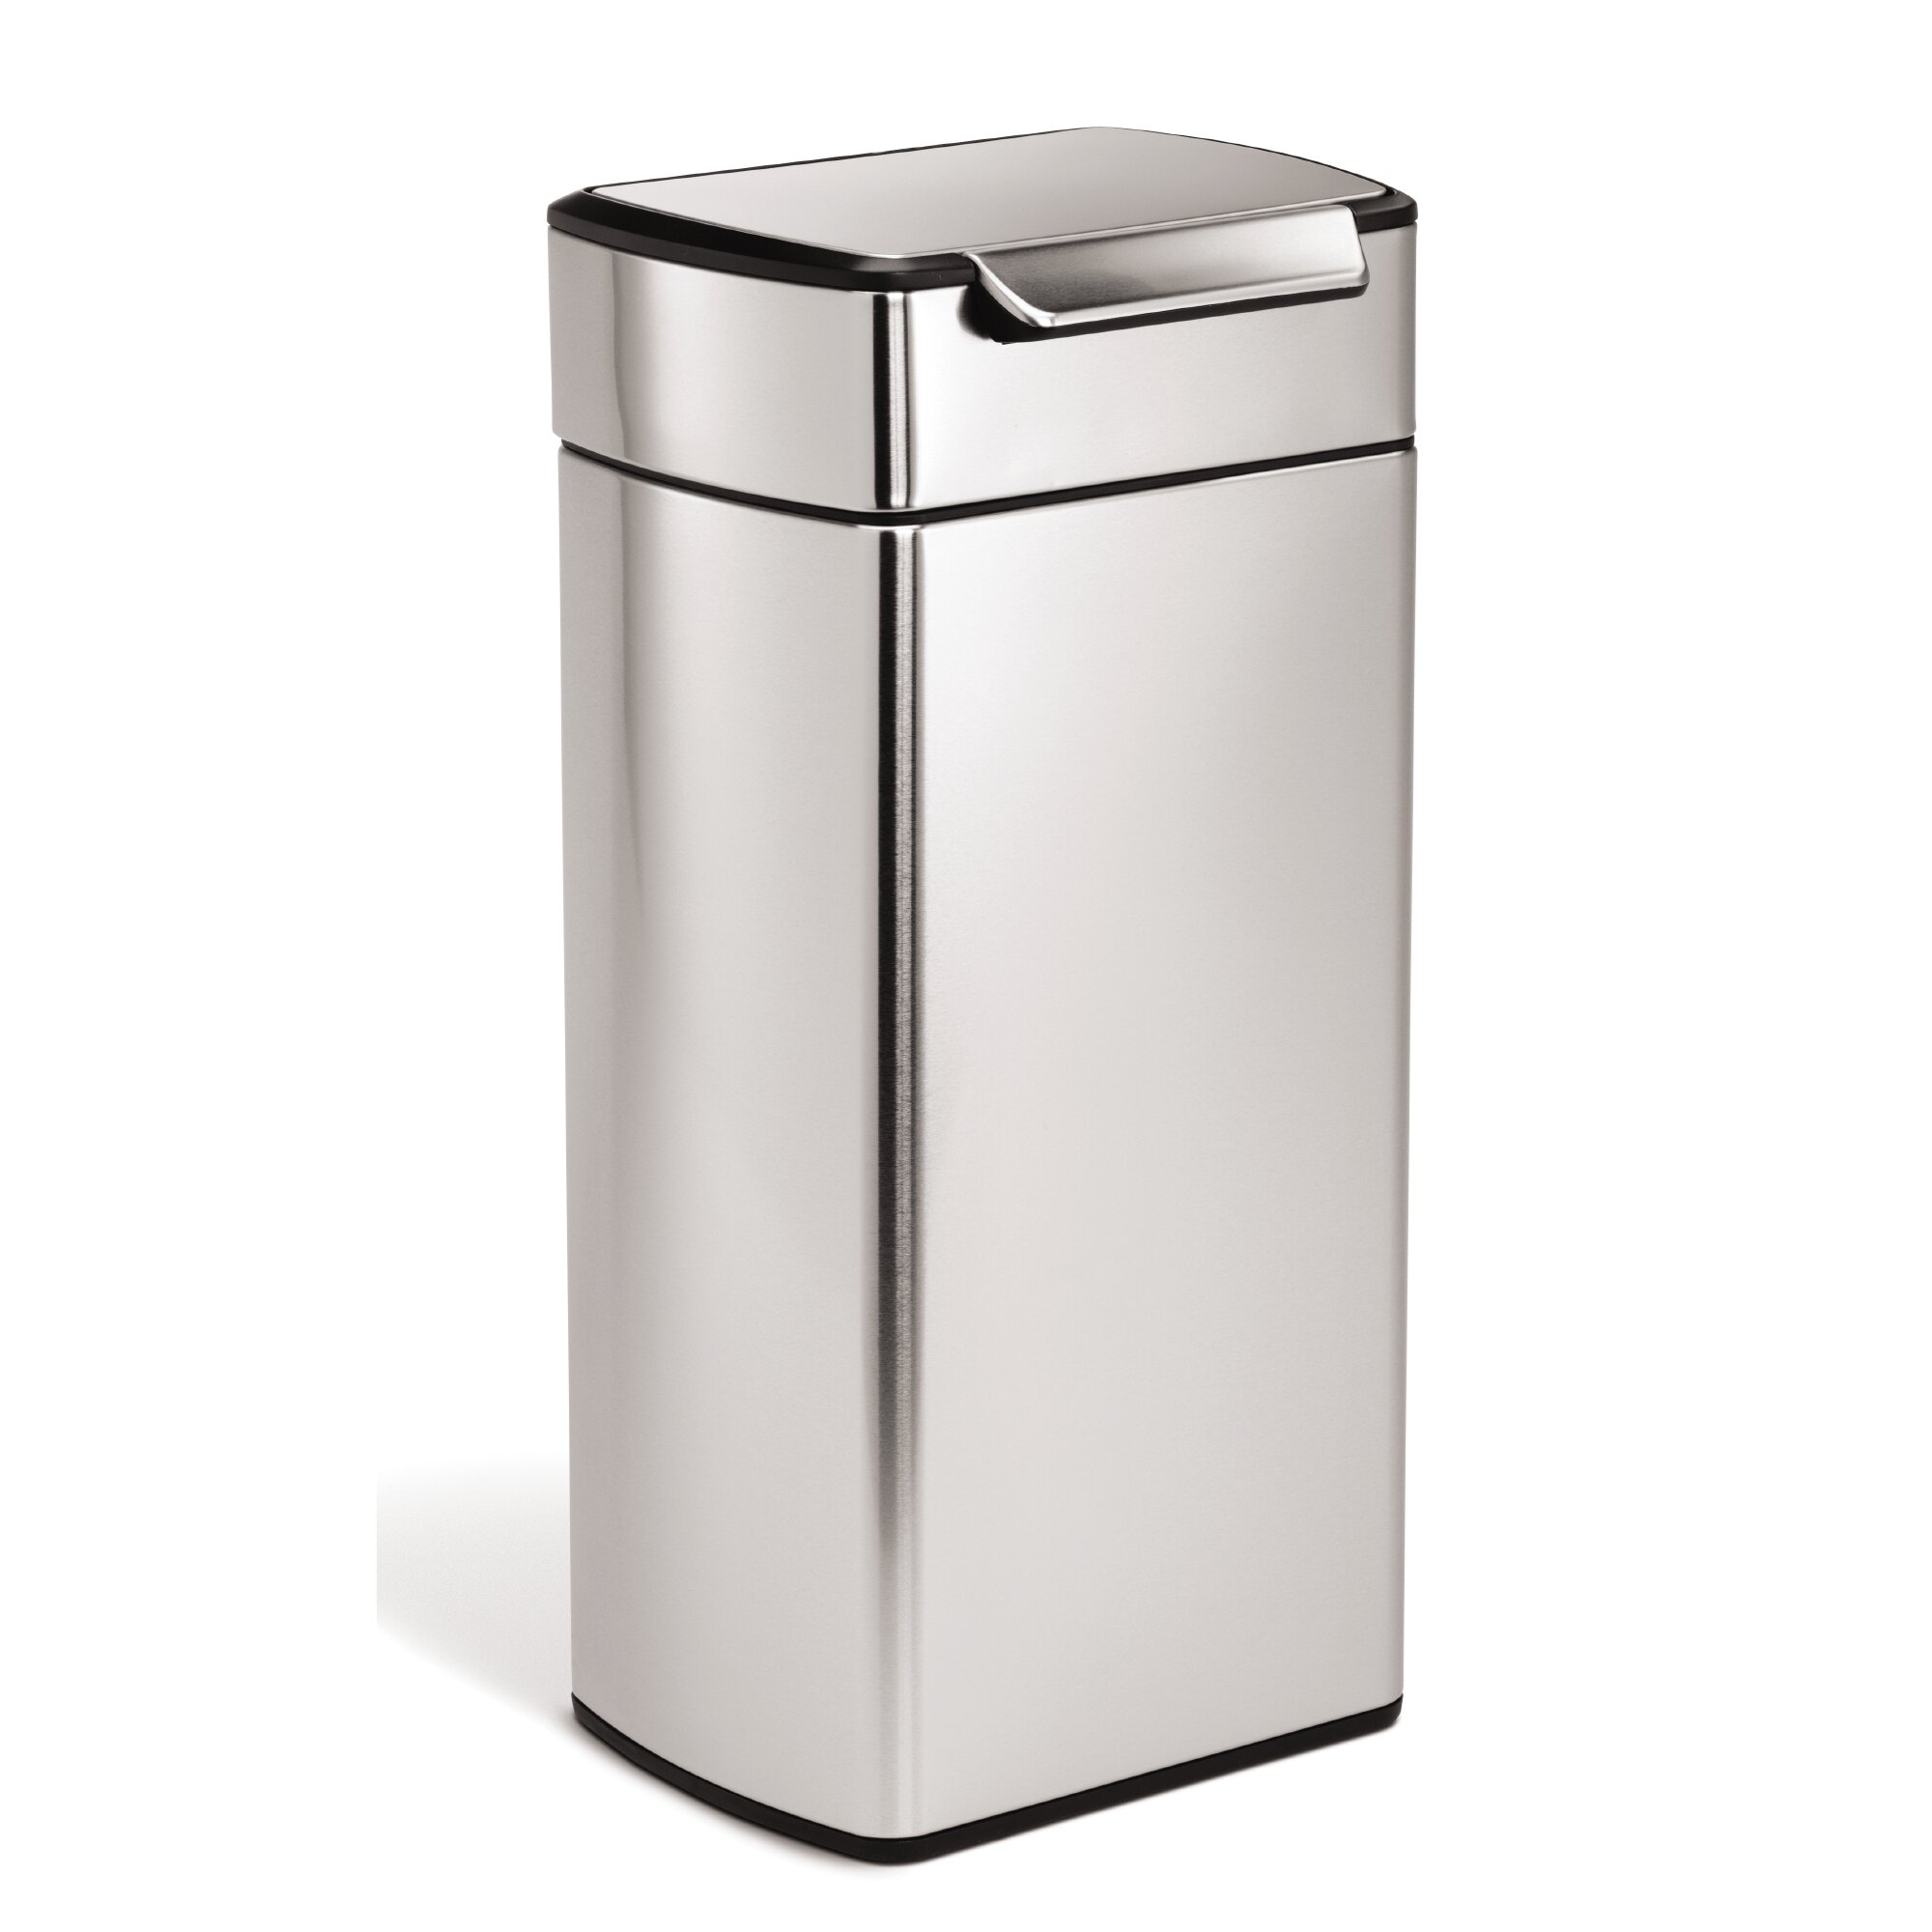 simplehuman 7 9 gallon touch top stainless steel trash can reviews wayfair. Black Bedroom Furniture Sets. Home Design Ideas